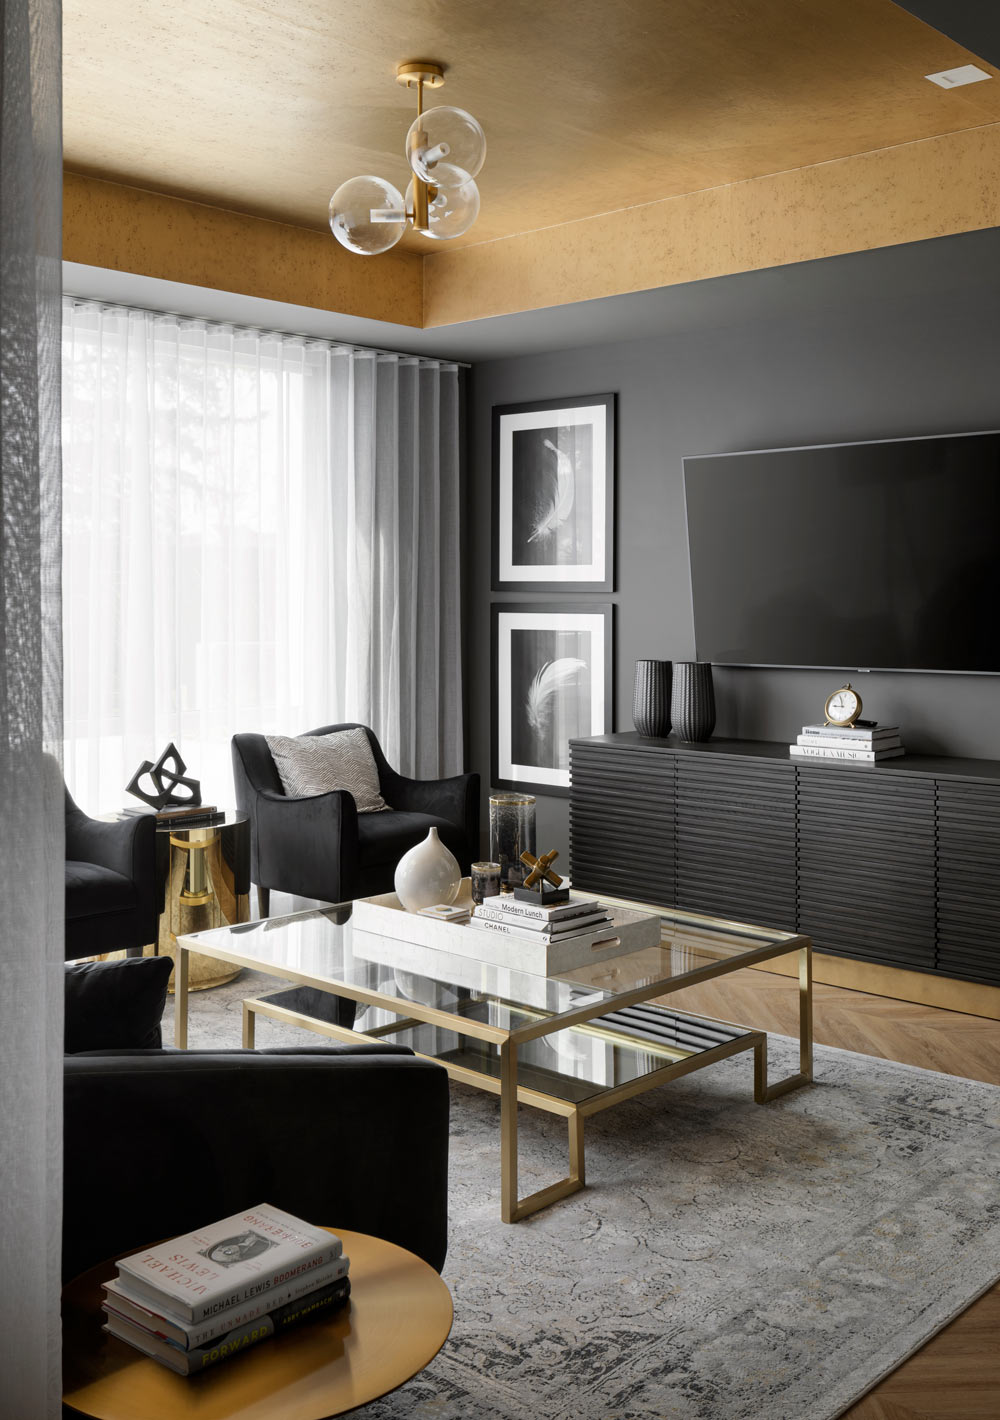 Gateway Condos by TRUMAN - Building Calgary's Best S.W TOWNHOMES